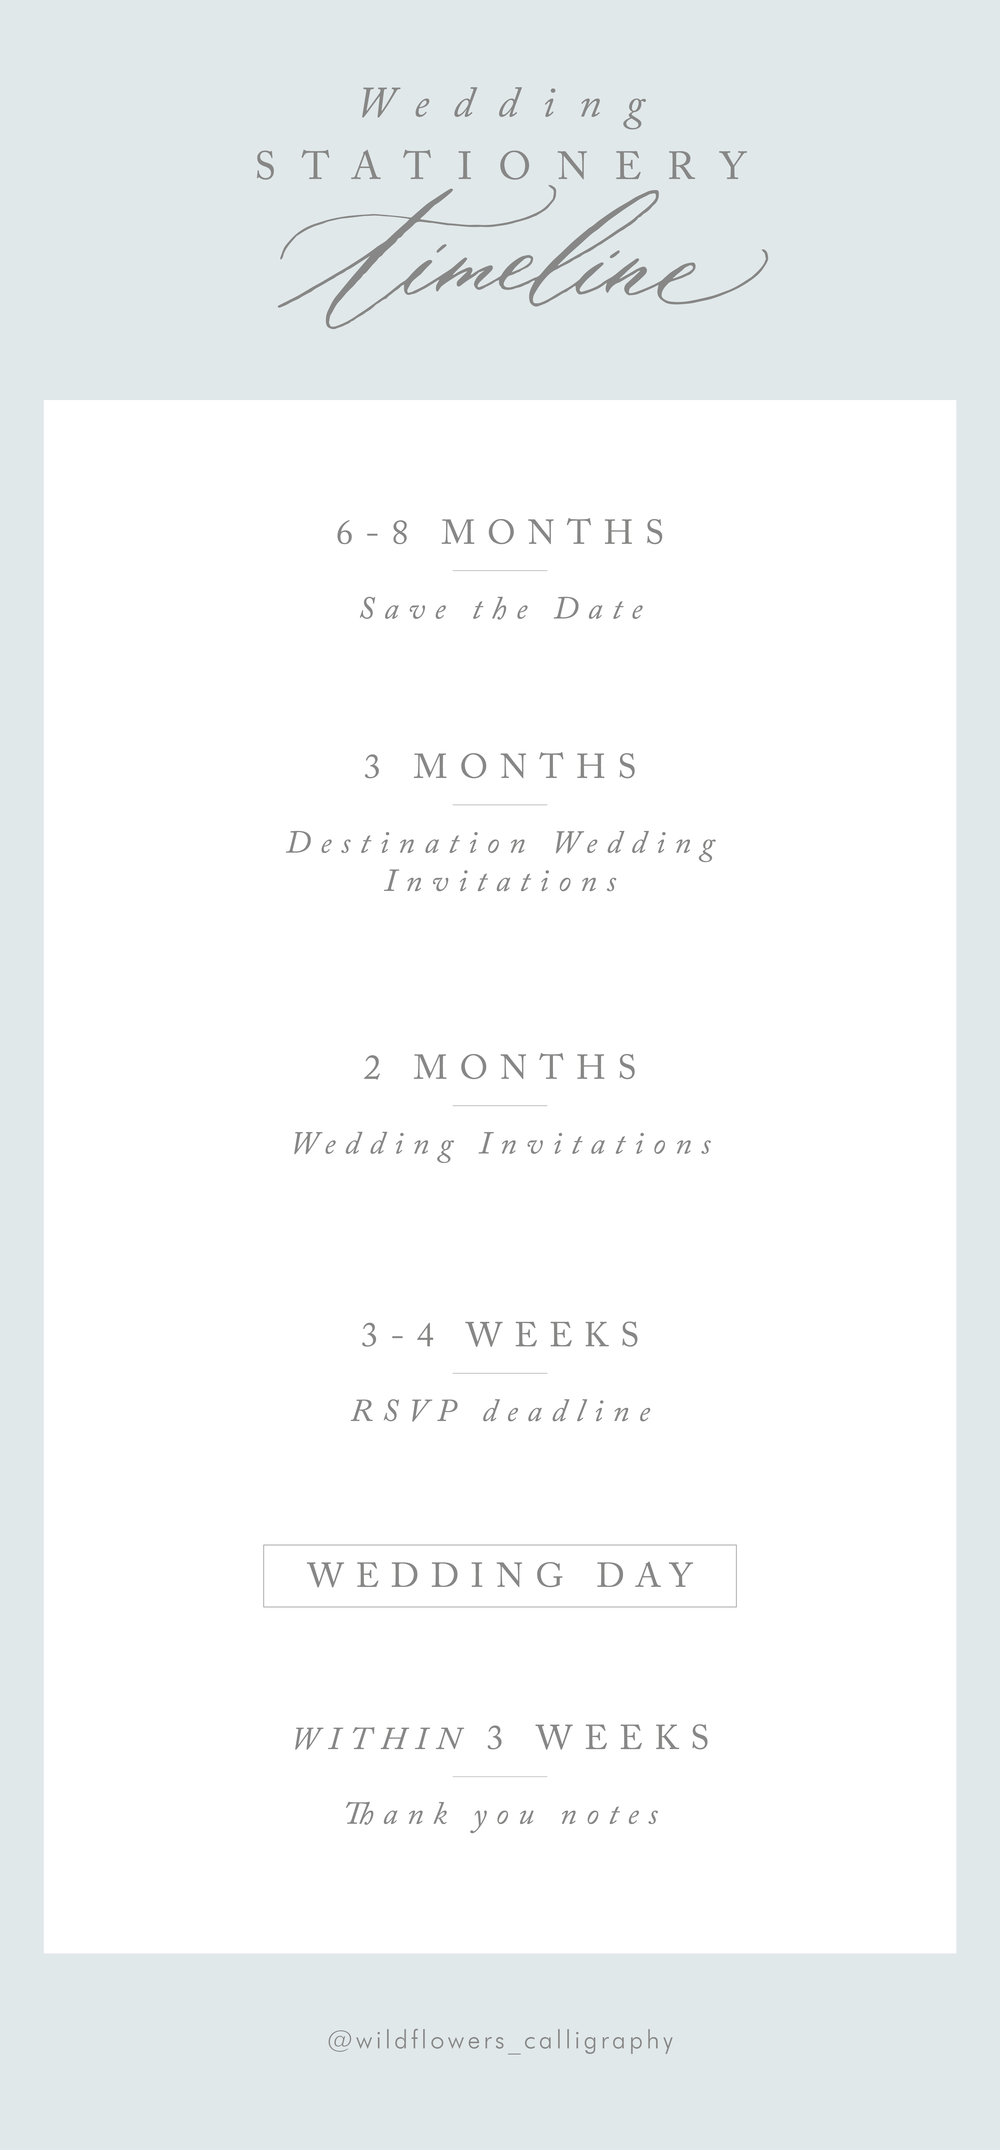 wedding_stationery_timeline.jpg